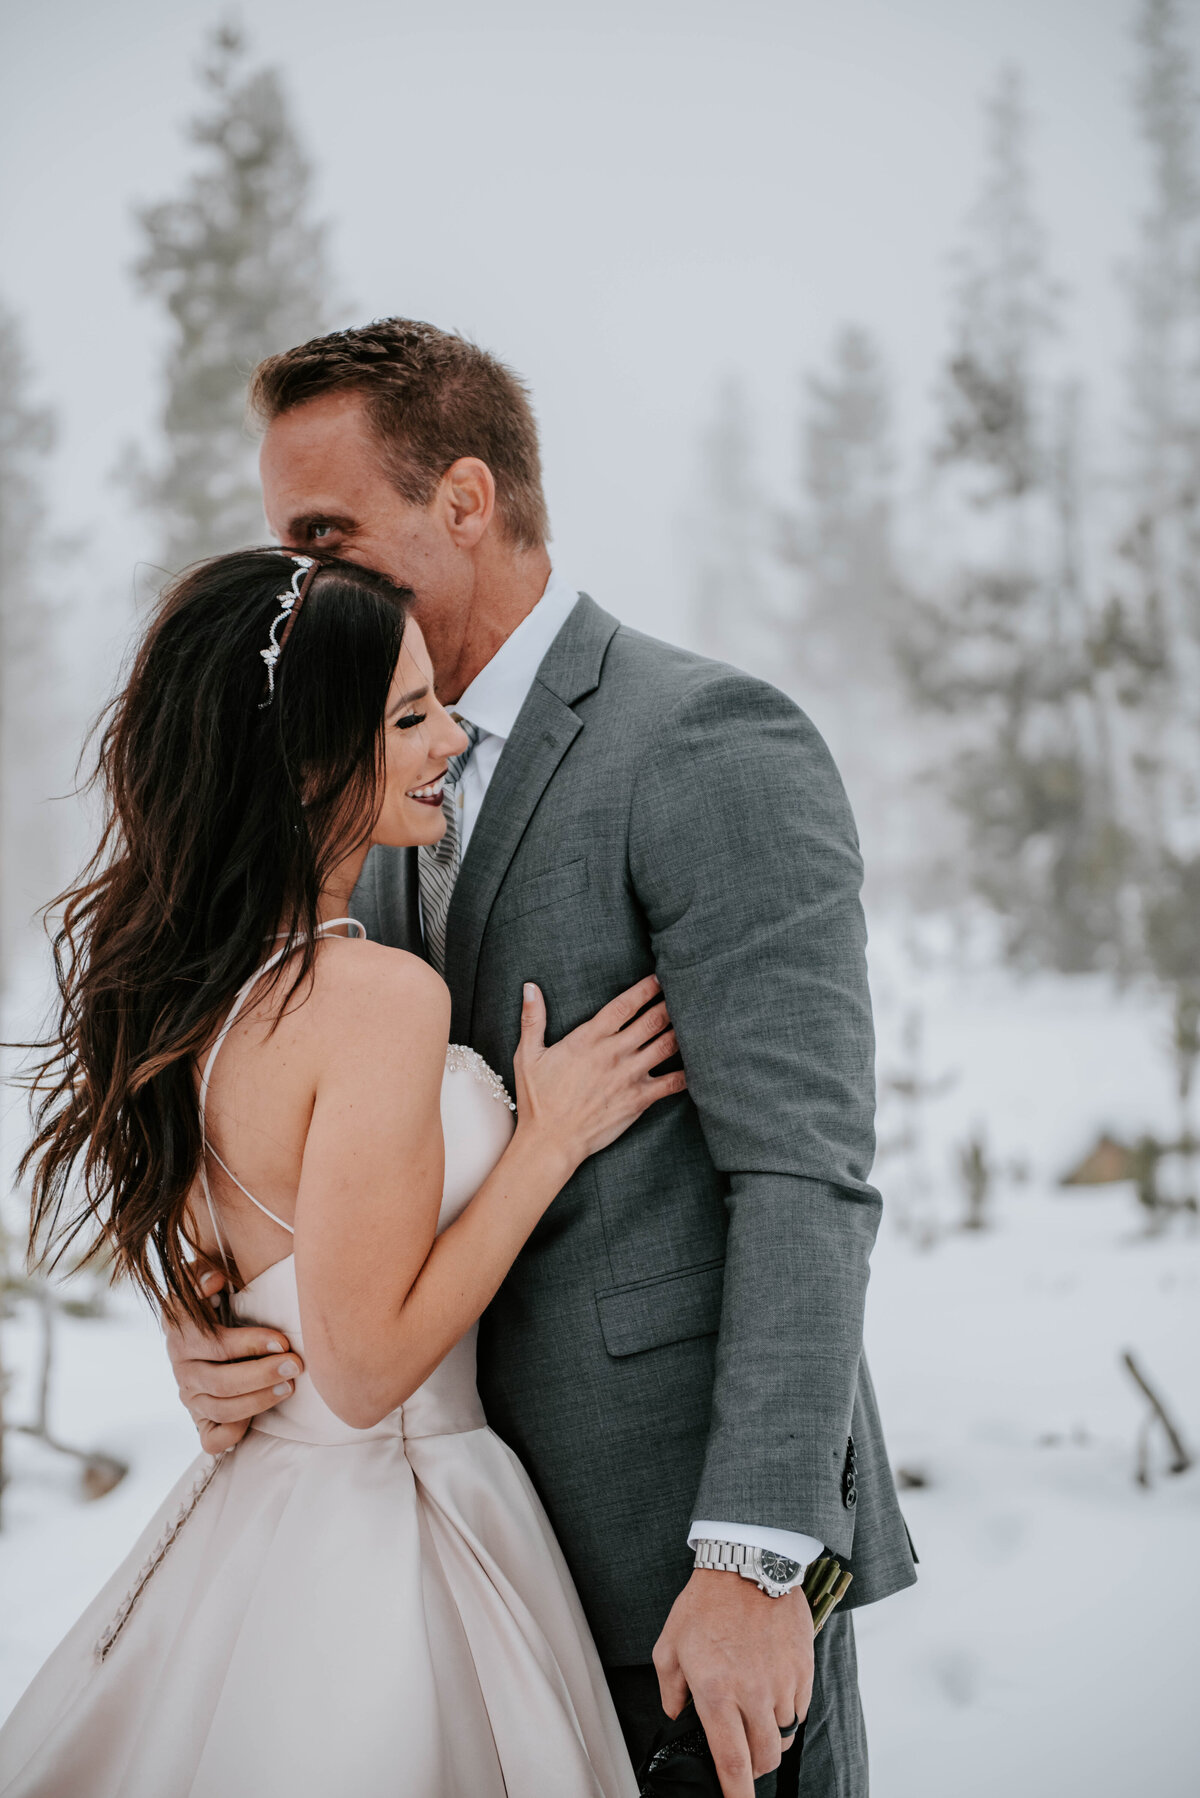 mt-bachelor-snow-winter-elopement-bend-oregon-wedding-photographer-2320